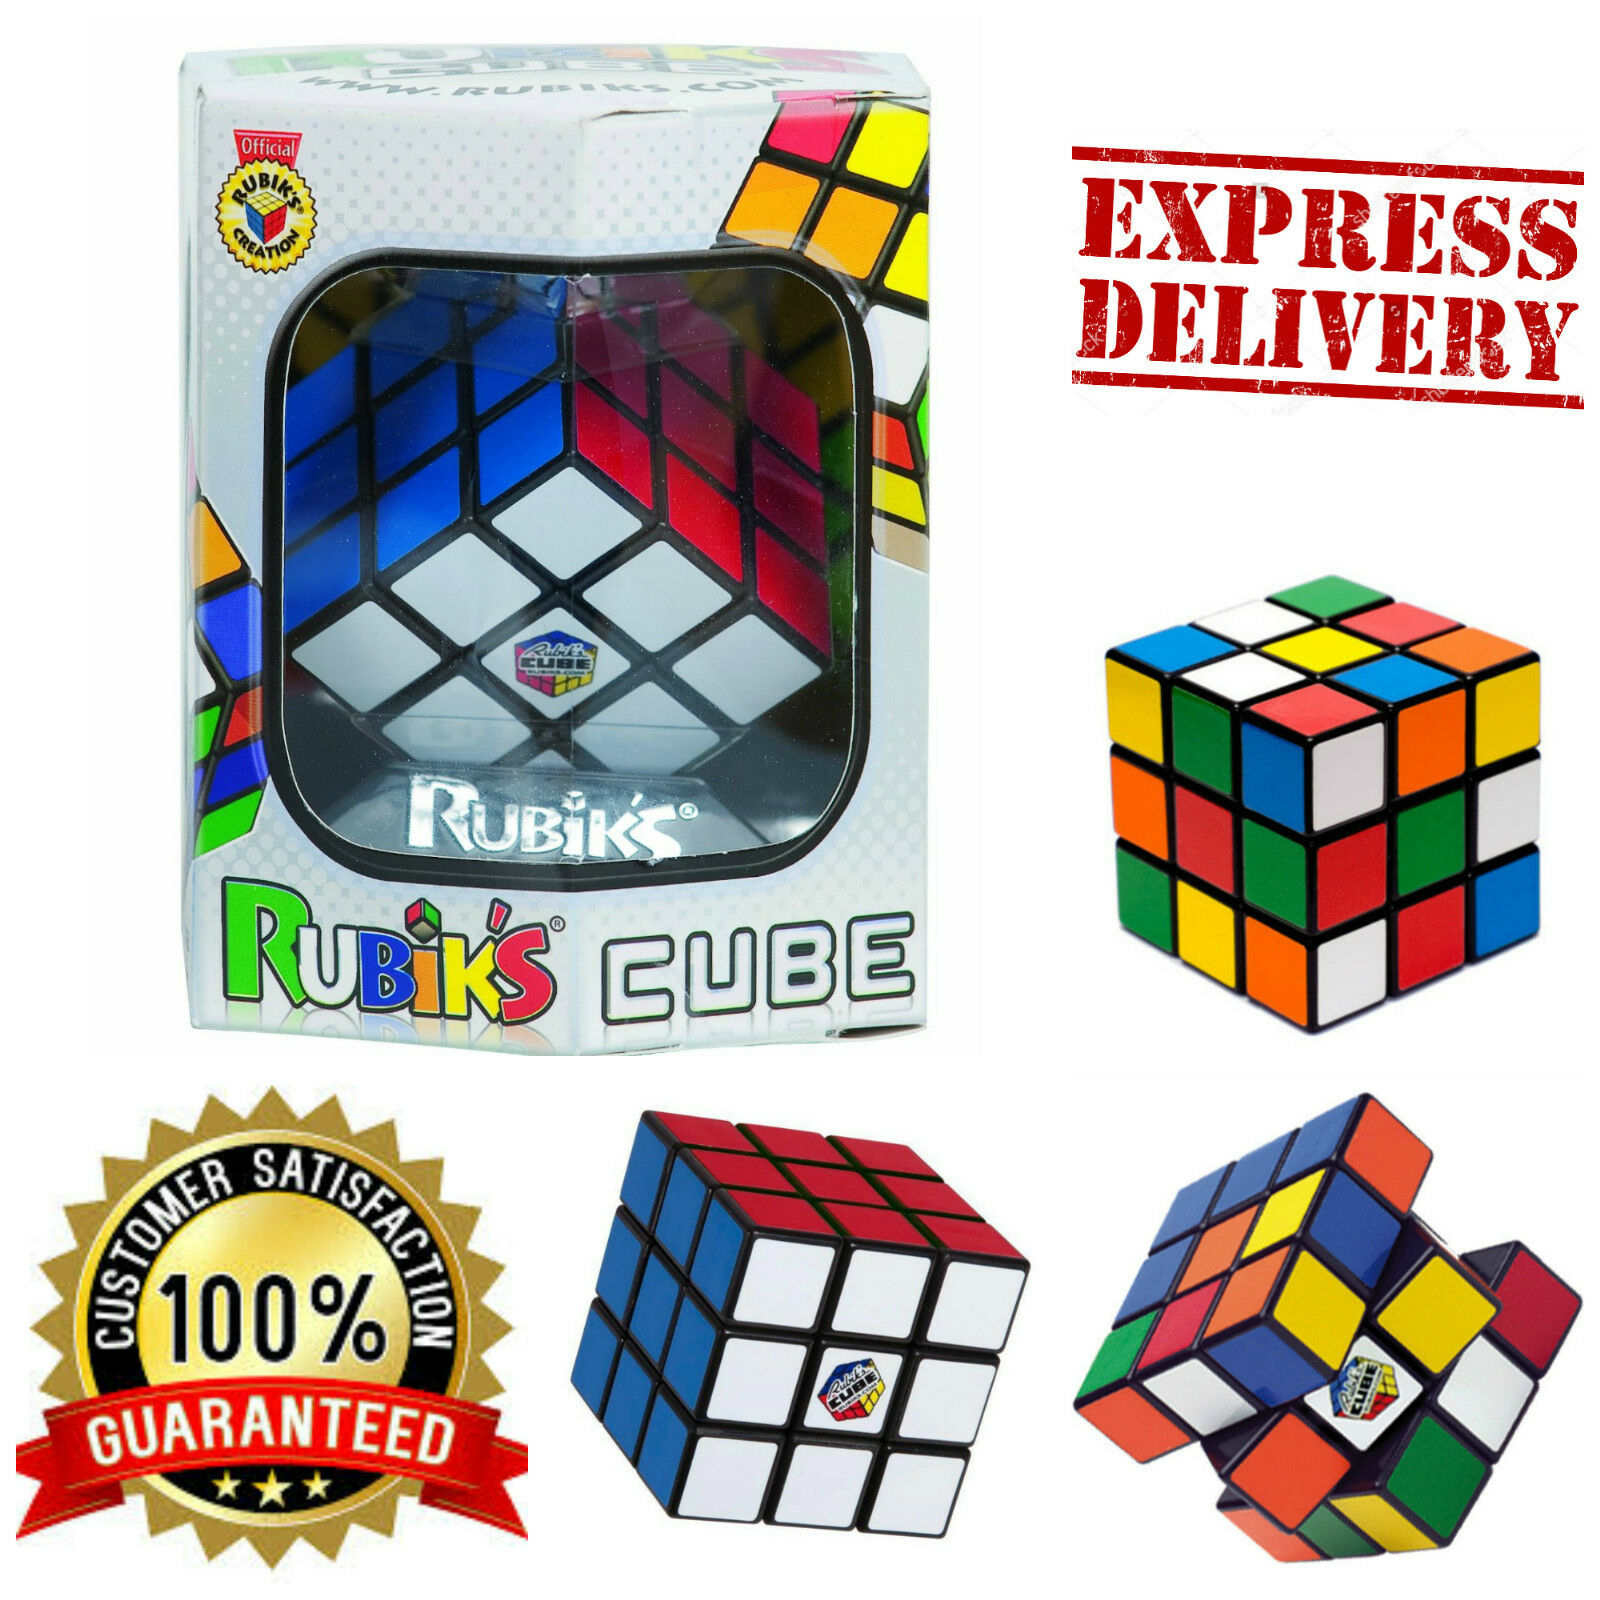 rubik 39 s cube original rubiks rubix cube puzzle mind game toy classic cube new eur 25 60. Black Bedroom Furniture Sets. Home Design Ideas